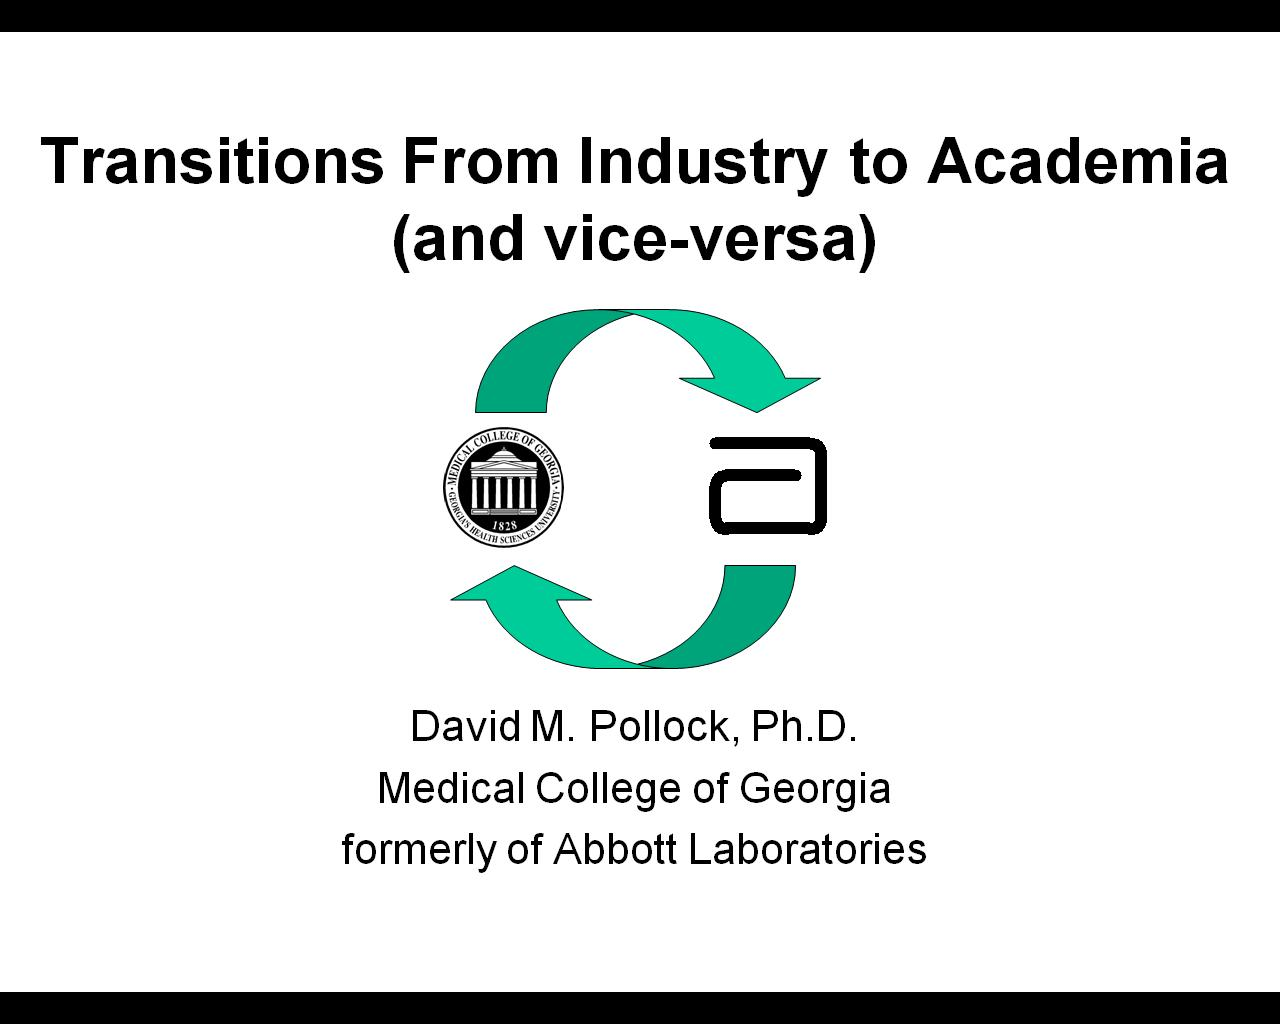 Search Results Two Way Switch Bbc Bitesize Career Transitions From Industry To Academia And Vice Versa David Pollock Medical College Of Georgia Meeting Presentation Video Web Page Html